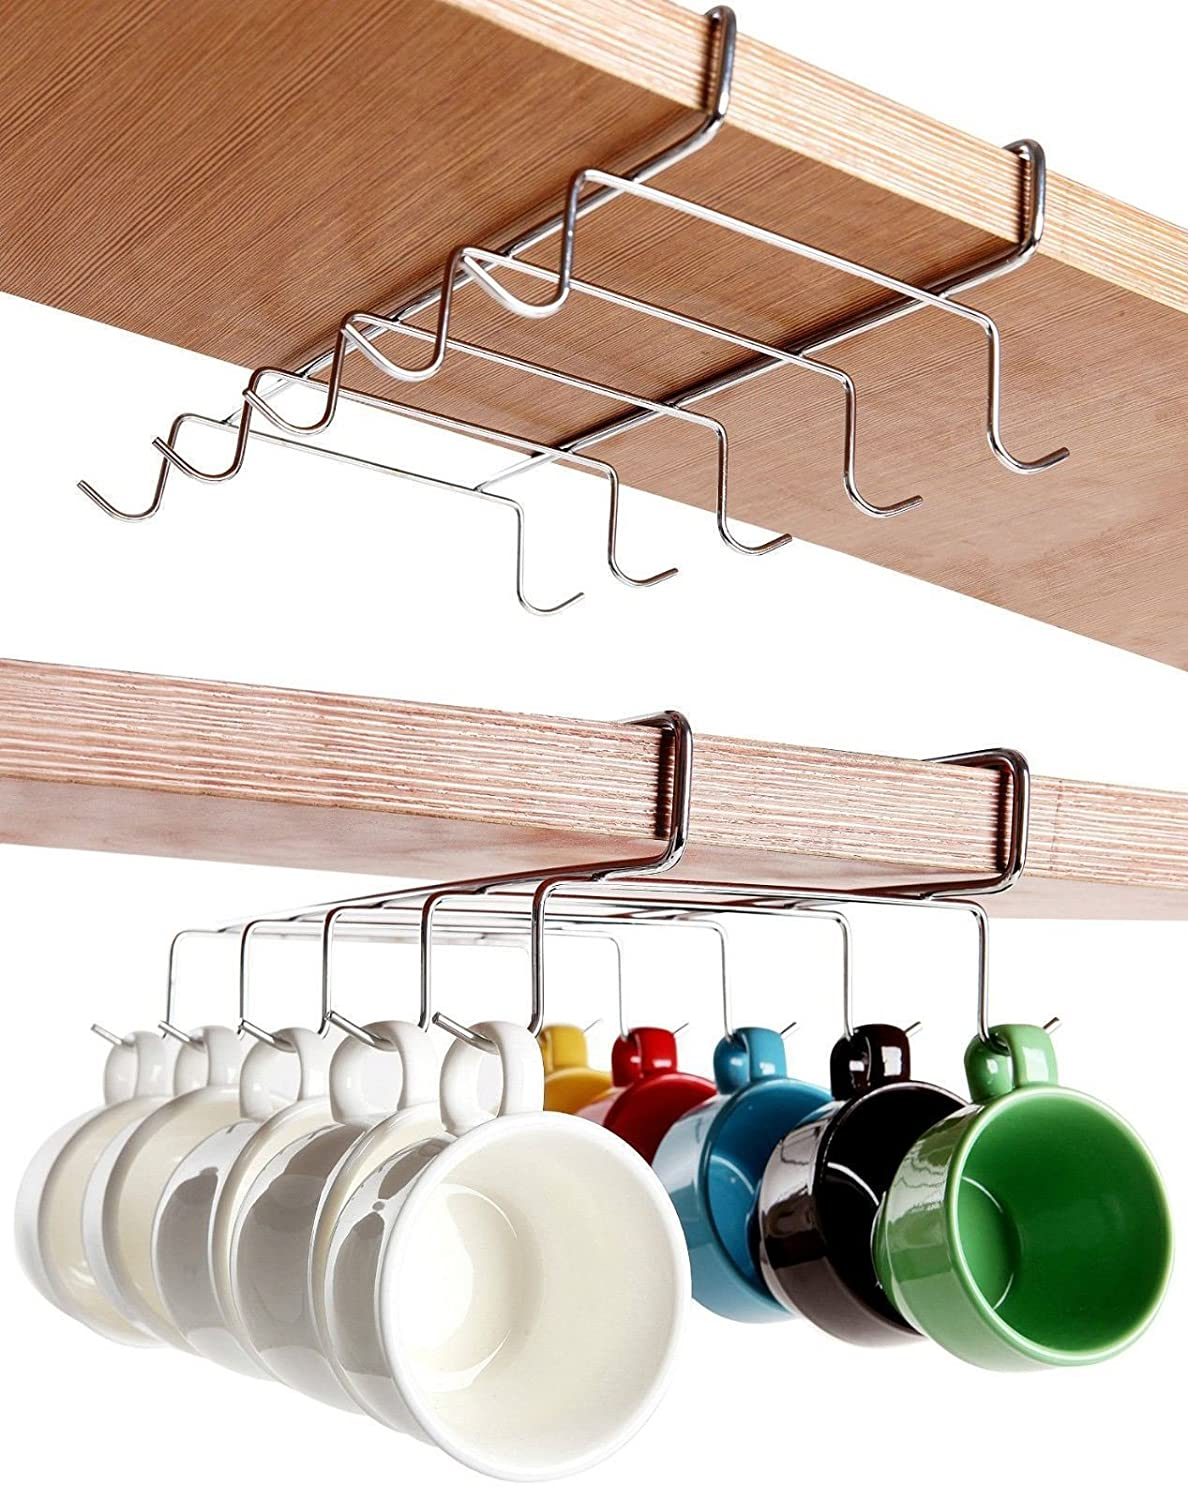 MUCHO Chrome Under Shelf Cabinet Mug Tea Cup Holder Storage Hook Organizer - 10 Hook ValuePound